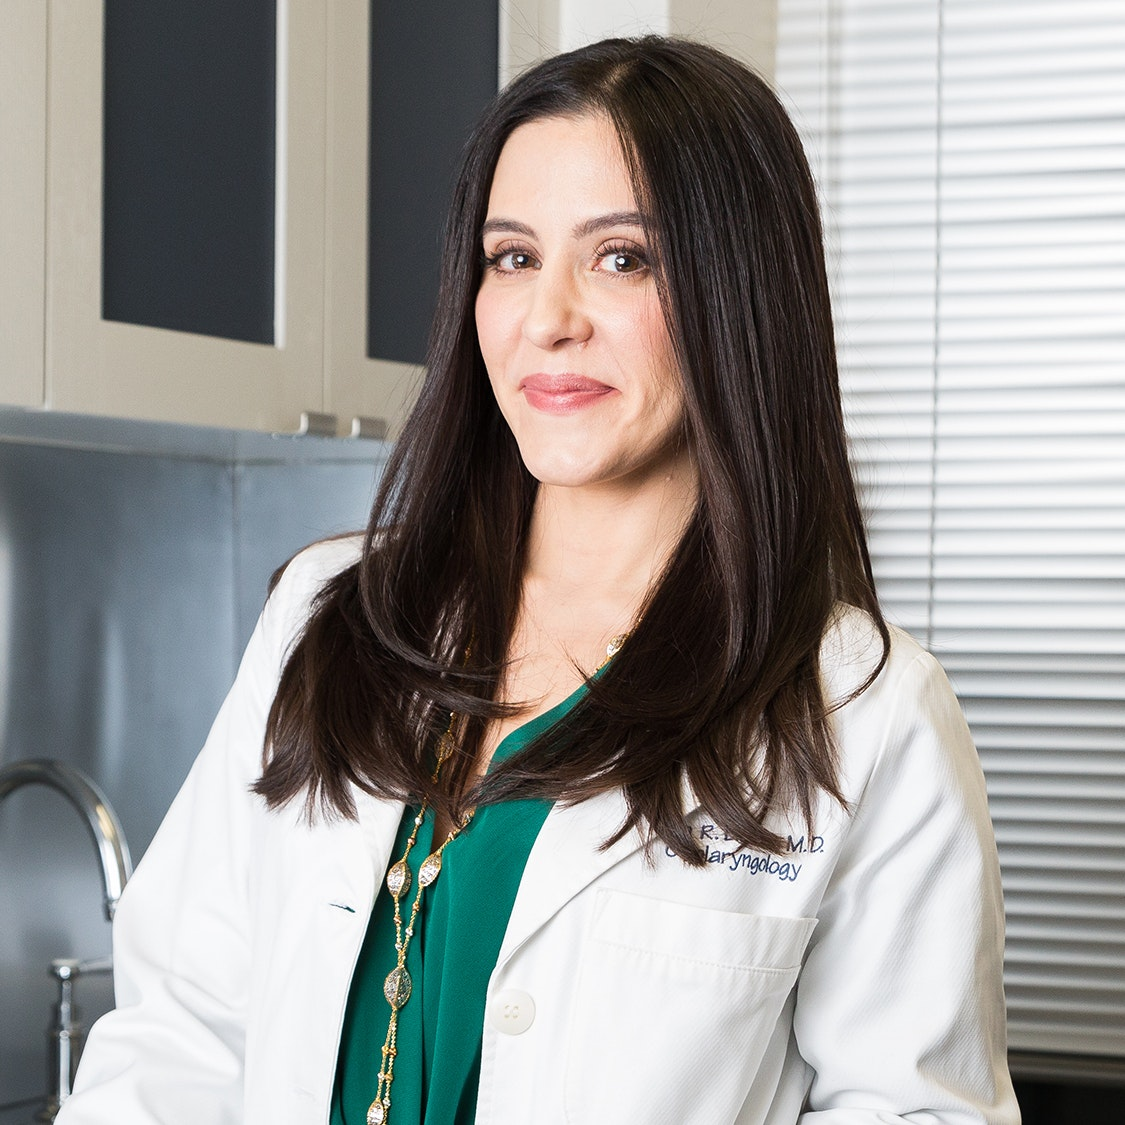 """Plastic Surgeon Dr. Dara Liotta on """"Tweak-ments,"""" Millennial Patients, and Why the Operating Room Is Her """"Zen Place"""""""